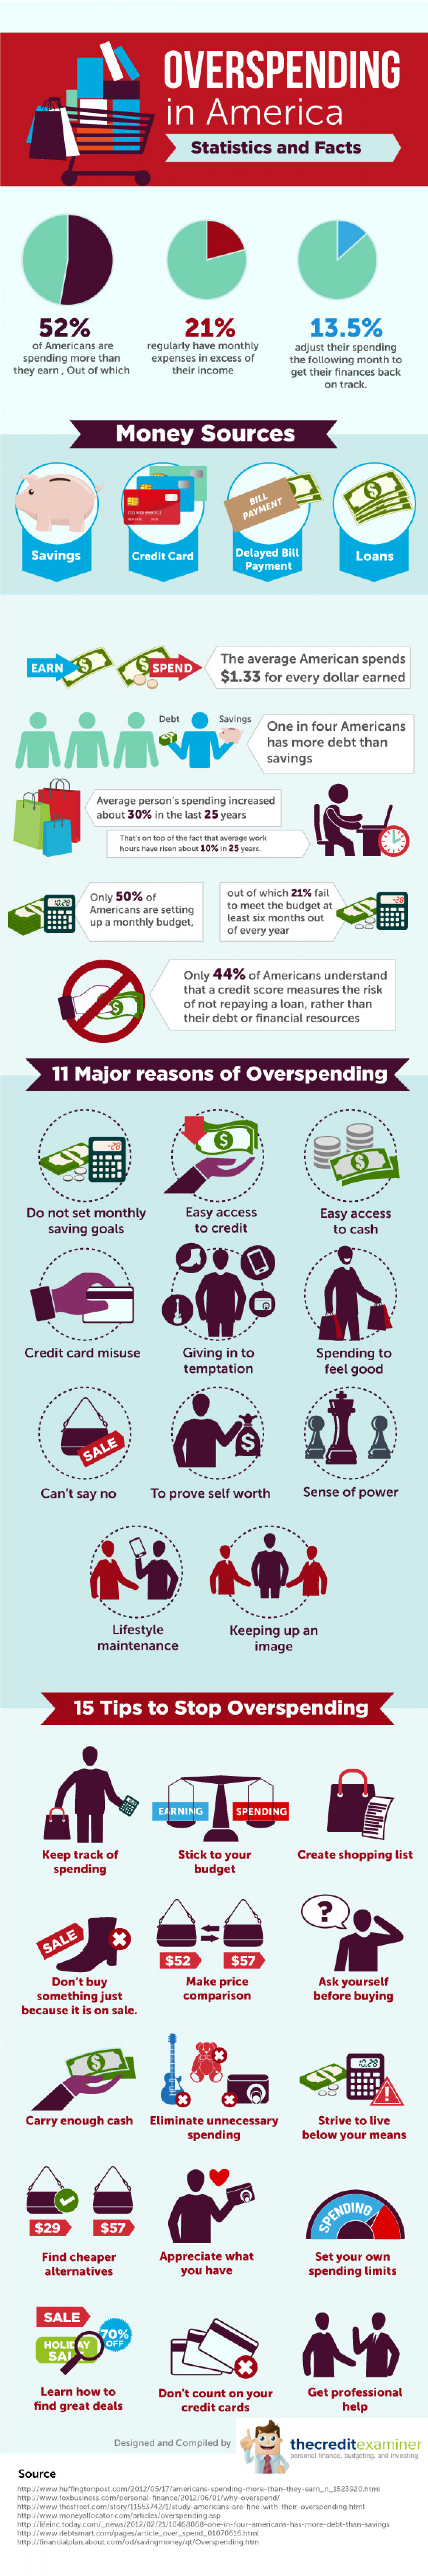 Overspending in America: Statistics and Facts Infographic